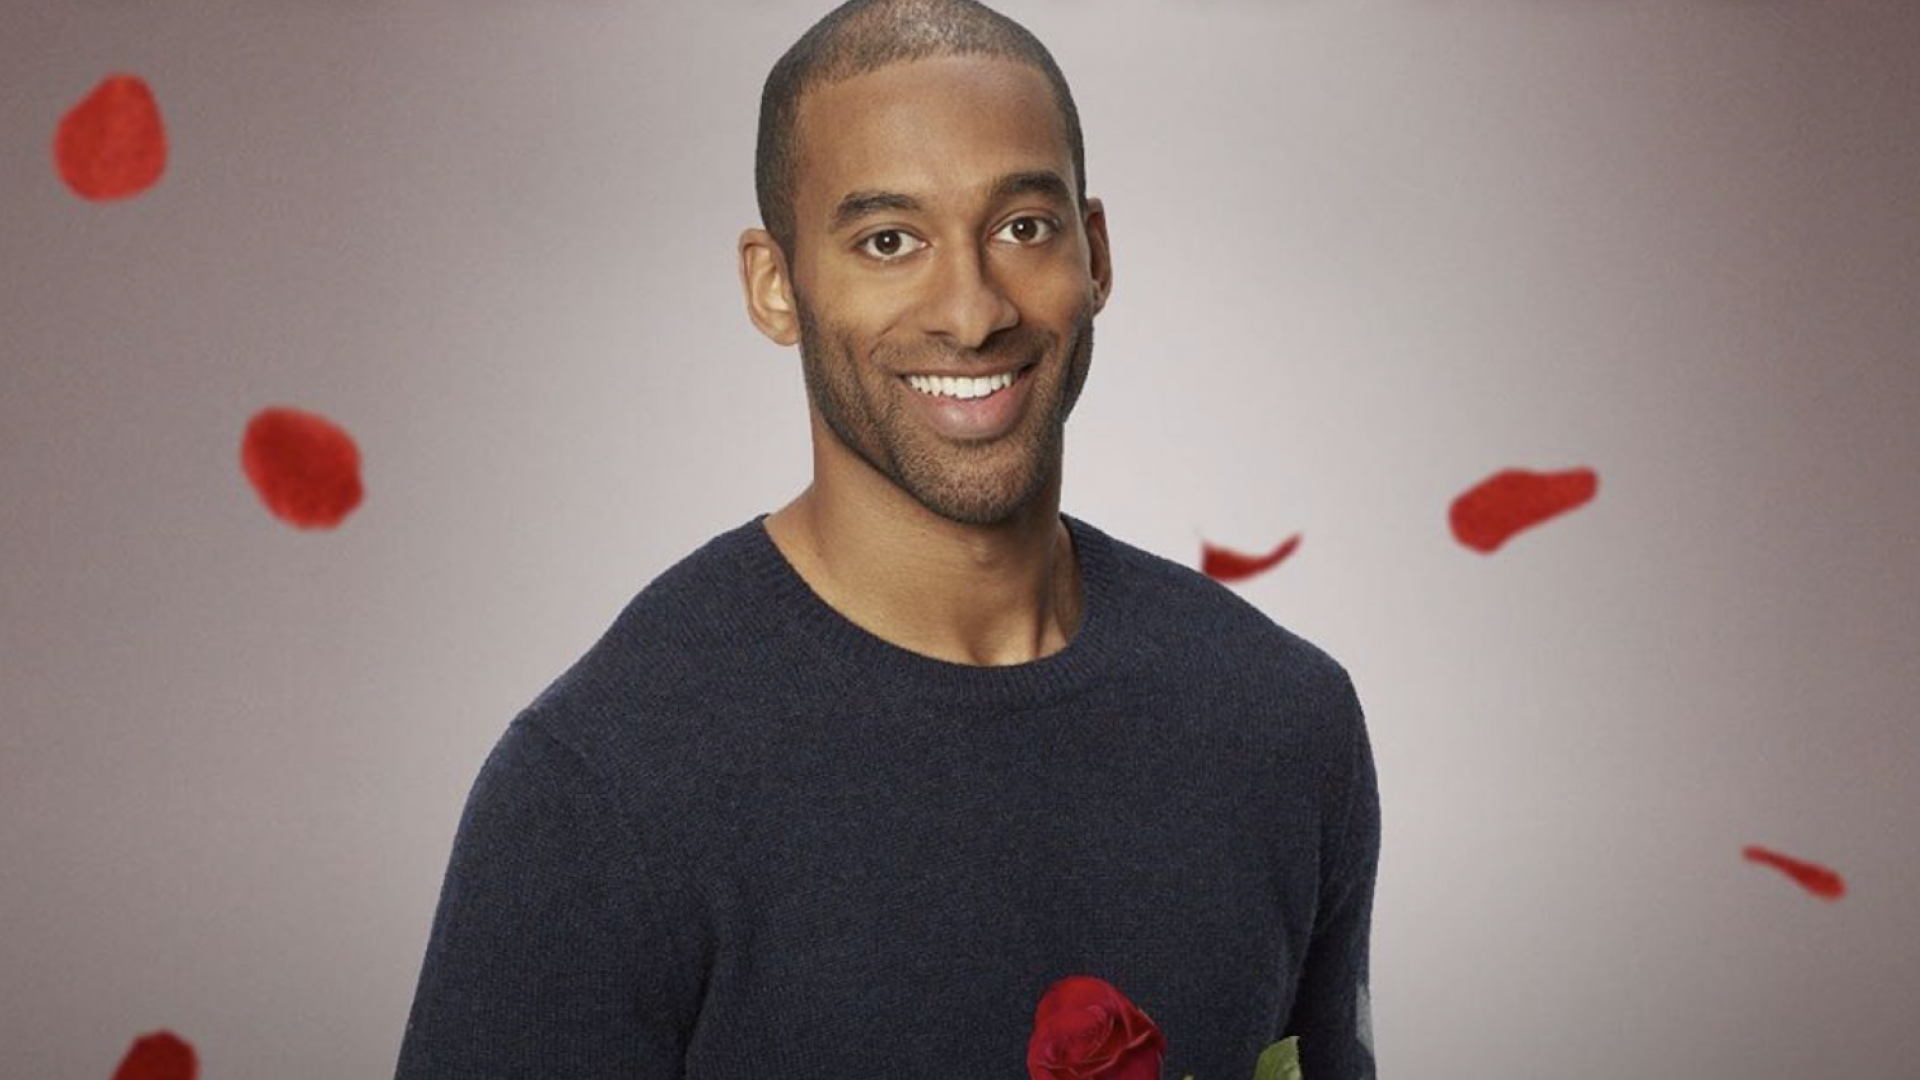 Matt James, The First Black Bachelor, Gets His Season Premiere In January 2021